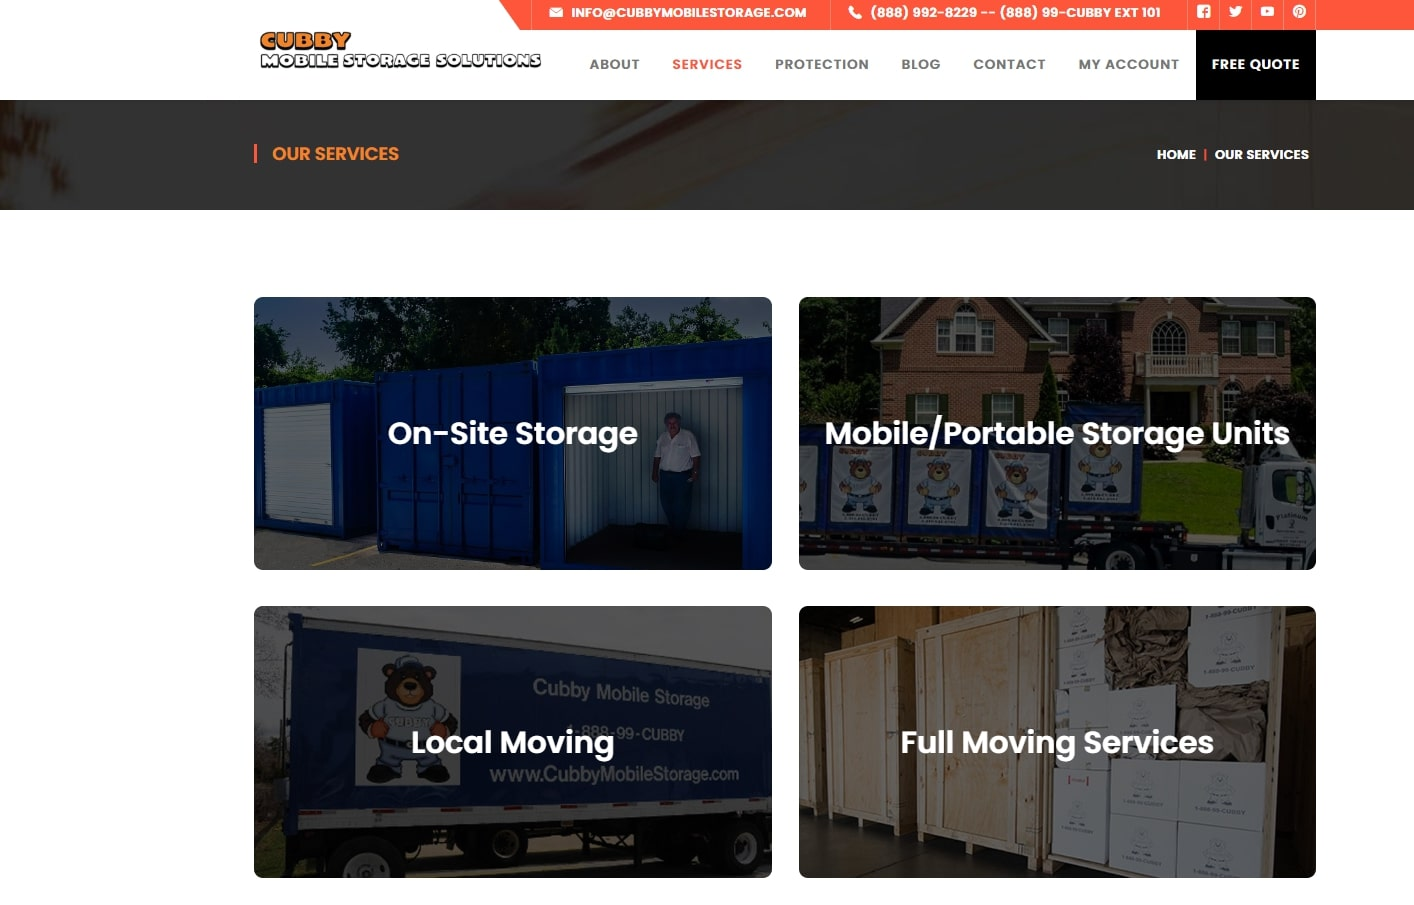 cubby mobile storage services